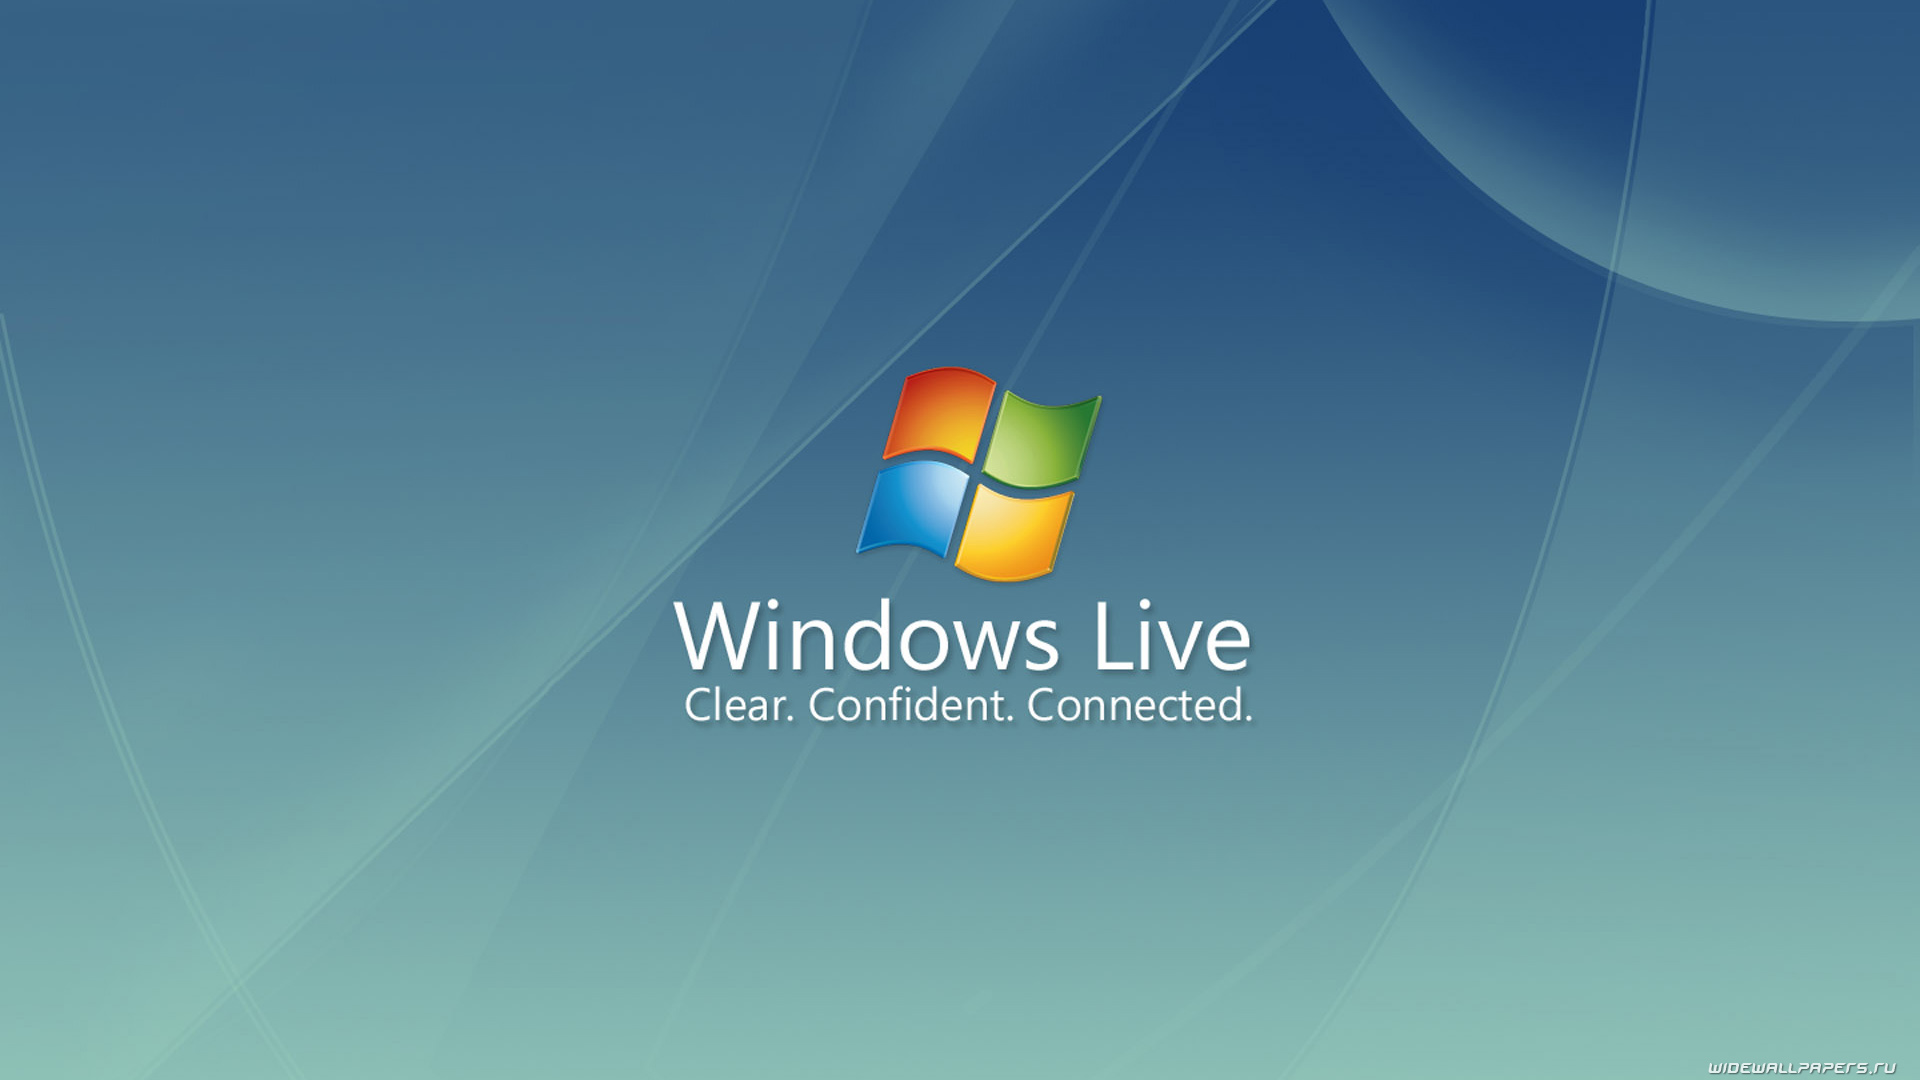 Windows Live Wallpapers HD Wallpapers 1920x1080